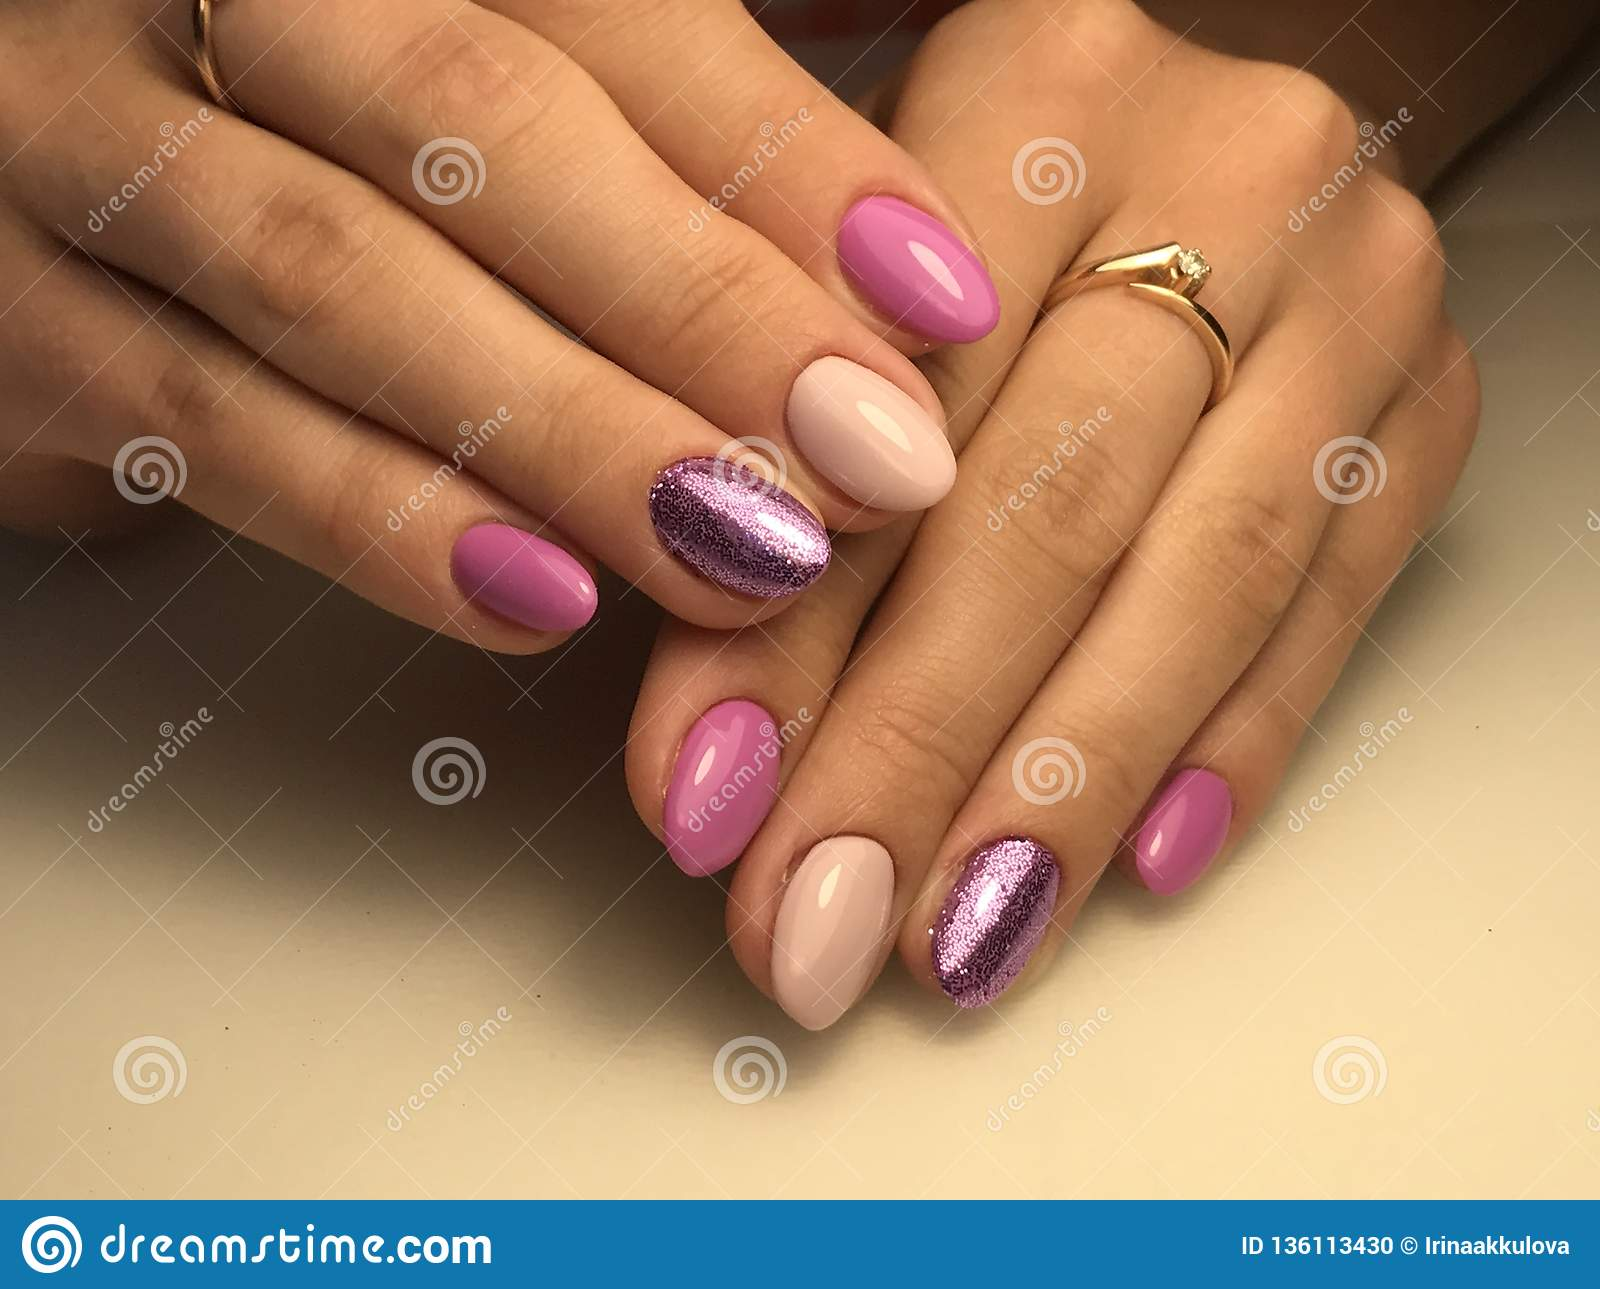 Nail Design Ideas Stock Photo Image Of Hand Pink